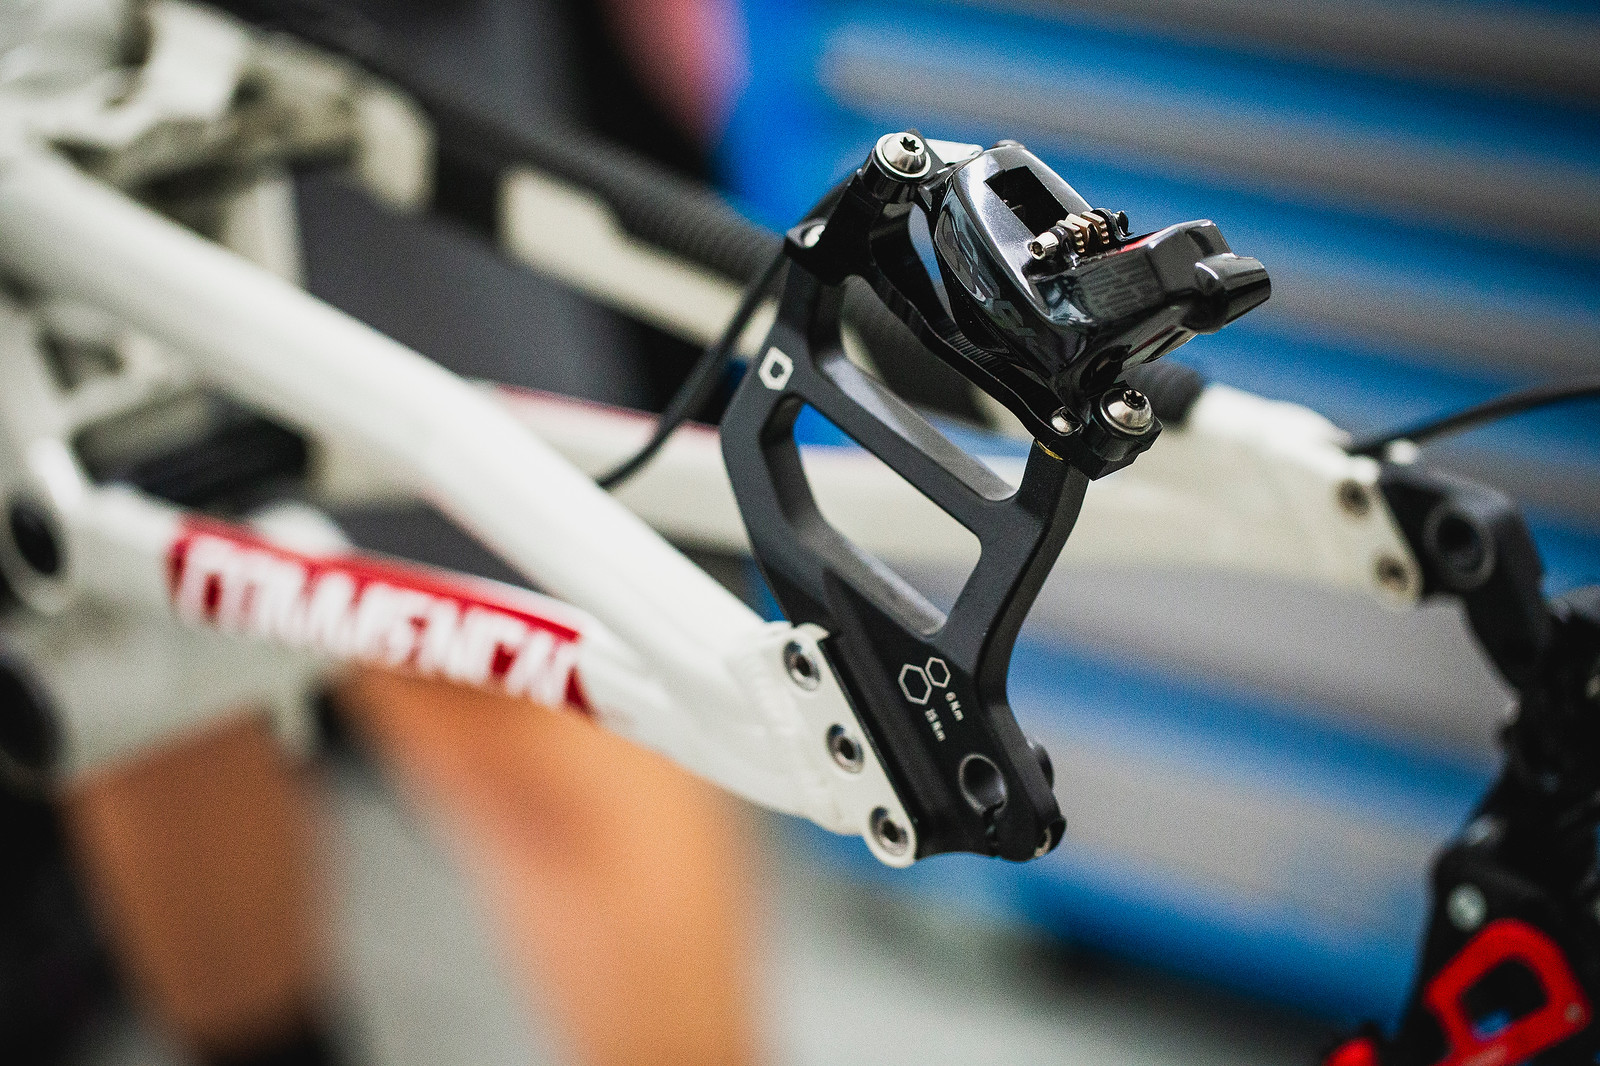 Massive Rotor Adaptors for Commencal - PIT BITS - 2019 Val di Sole World Cup Downhill Bike Tech - Mountain Biking Pictures - Vital MTB